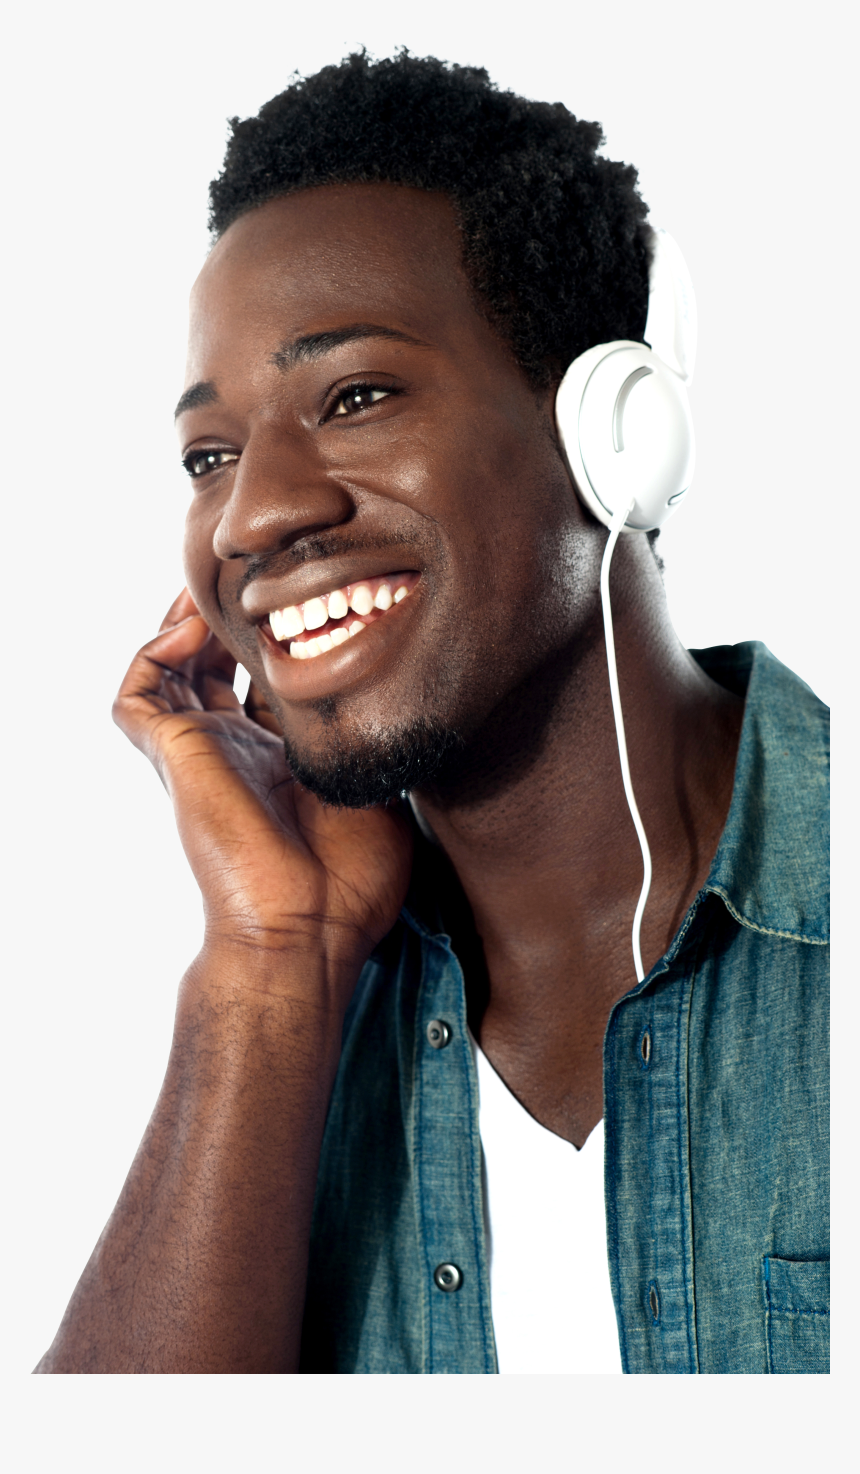 Listening Music Png Image - Listening To Music Transparent Background, Png Download, Free Download